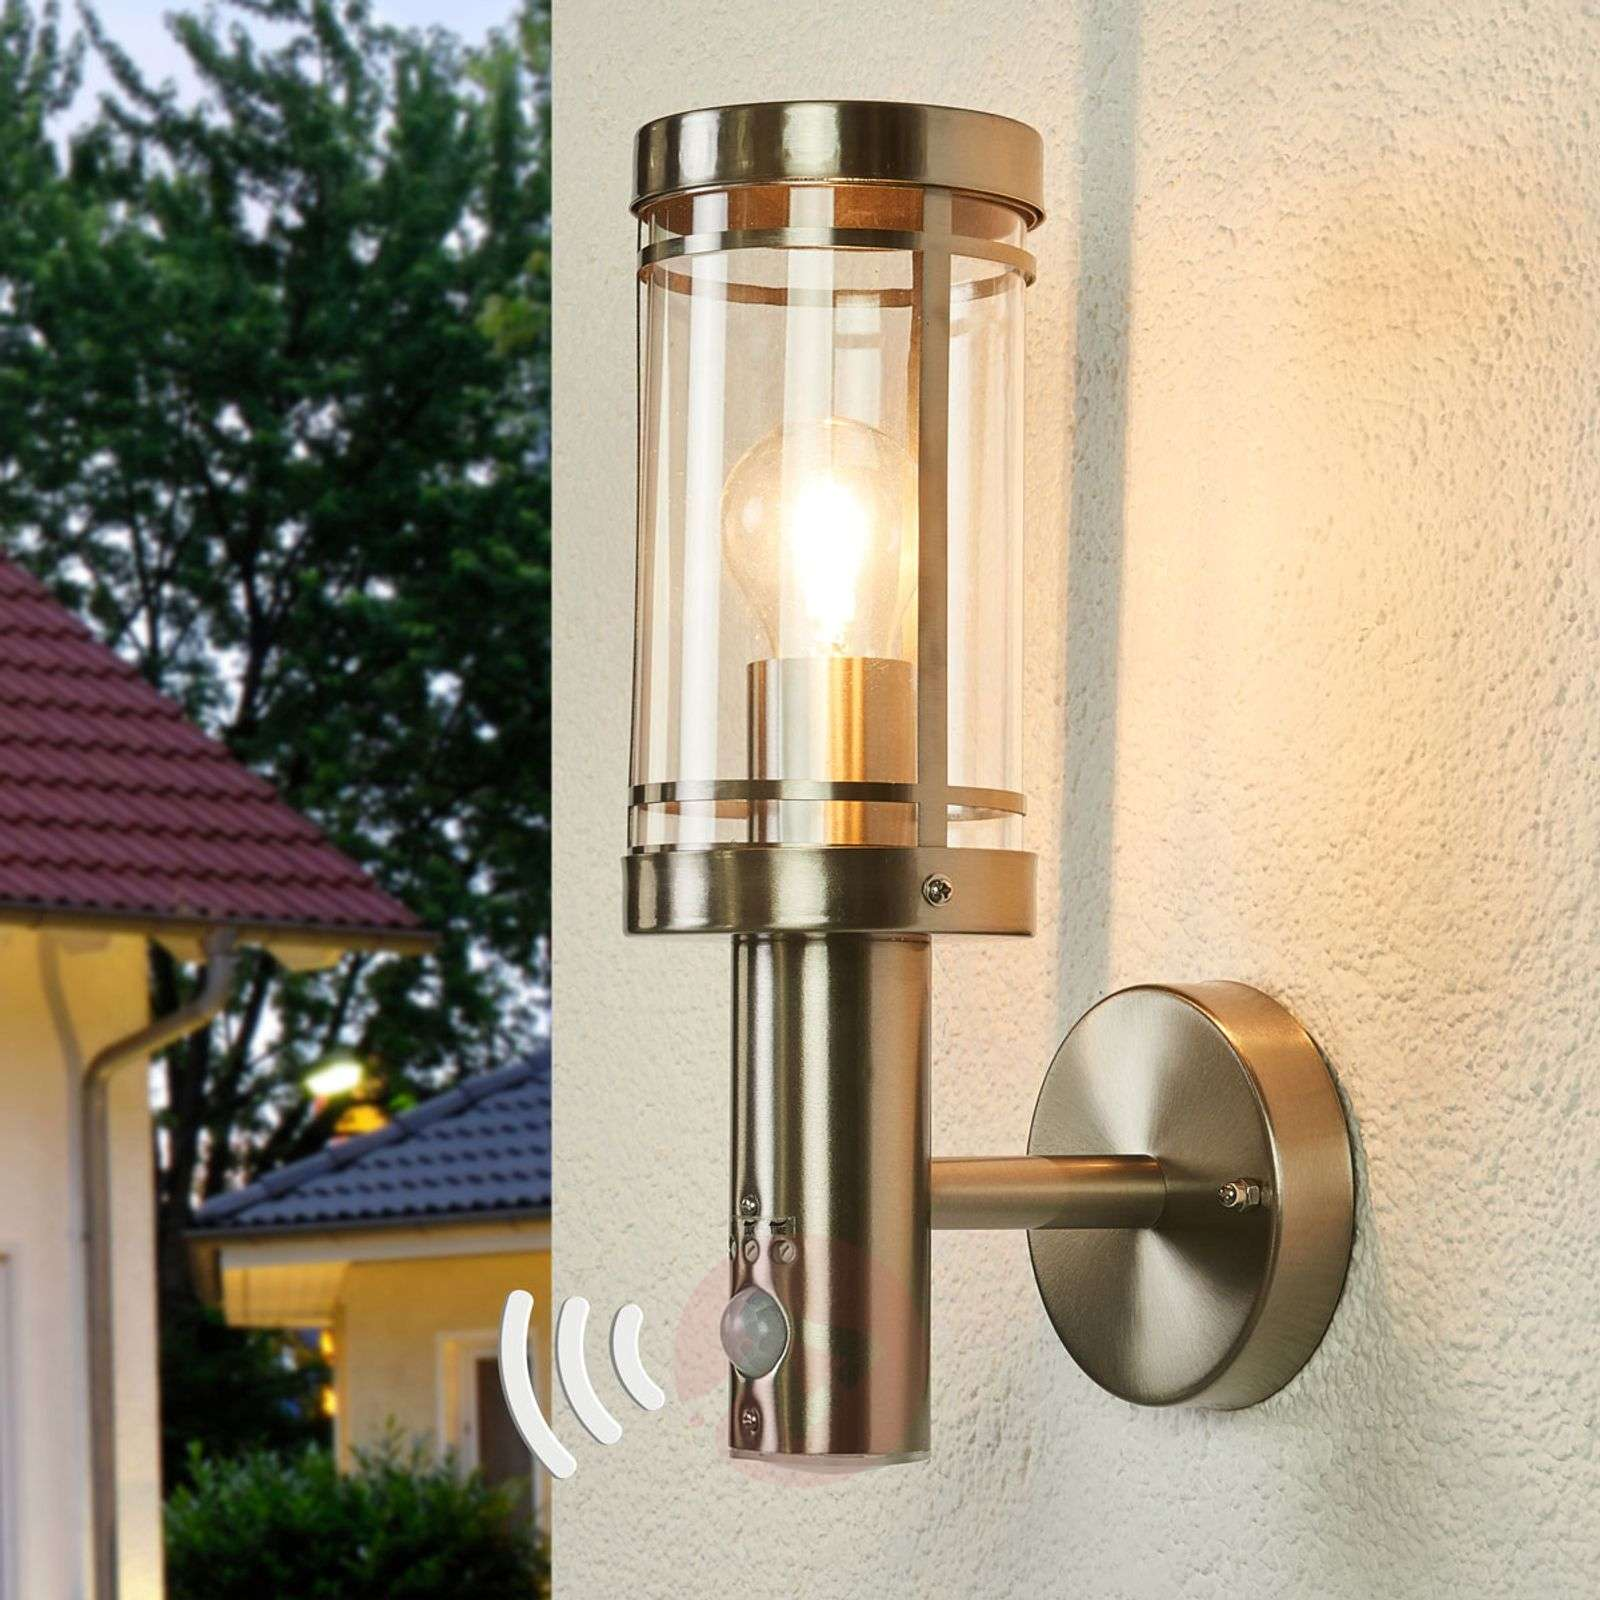 Outdoor Lighting Companies: Sensor Stainless Steel Outdoor Wall Lamp Djori